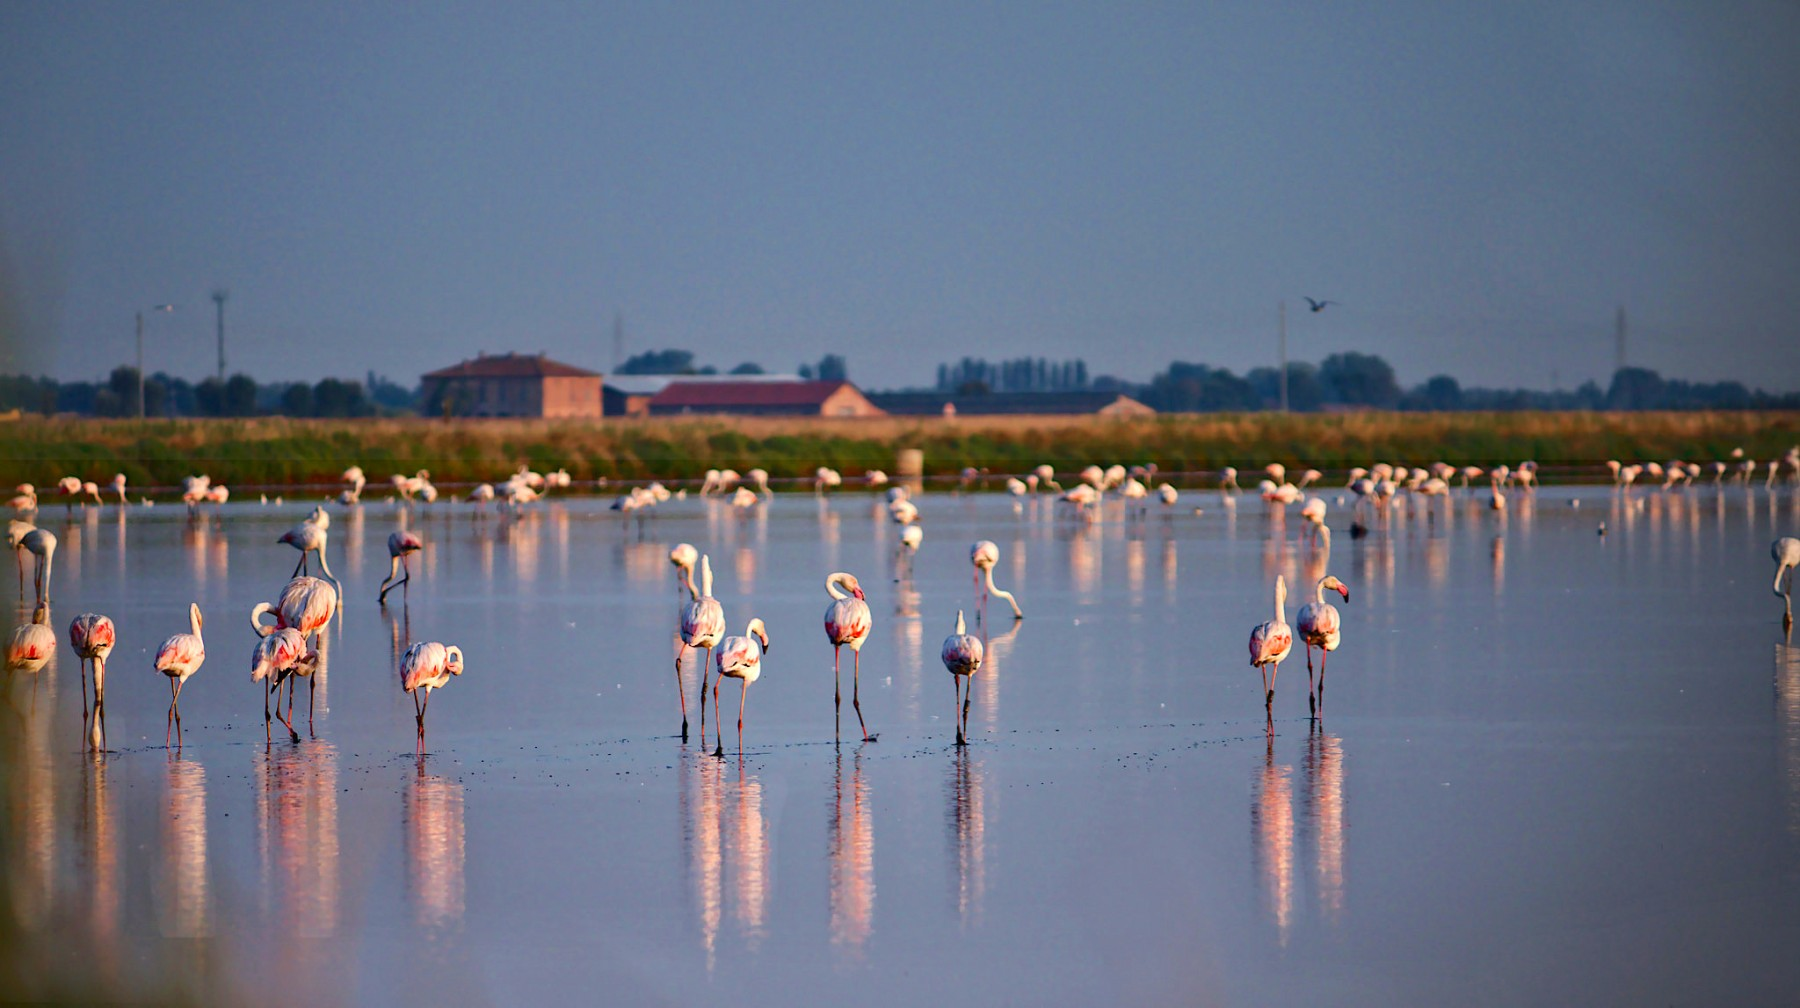 Le saline di Cervia | Foto by Massimo Briganti, via Flickr